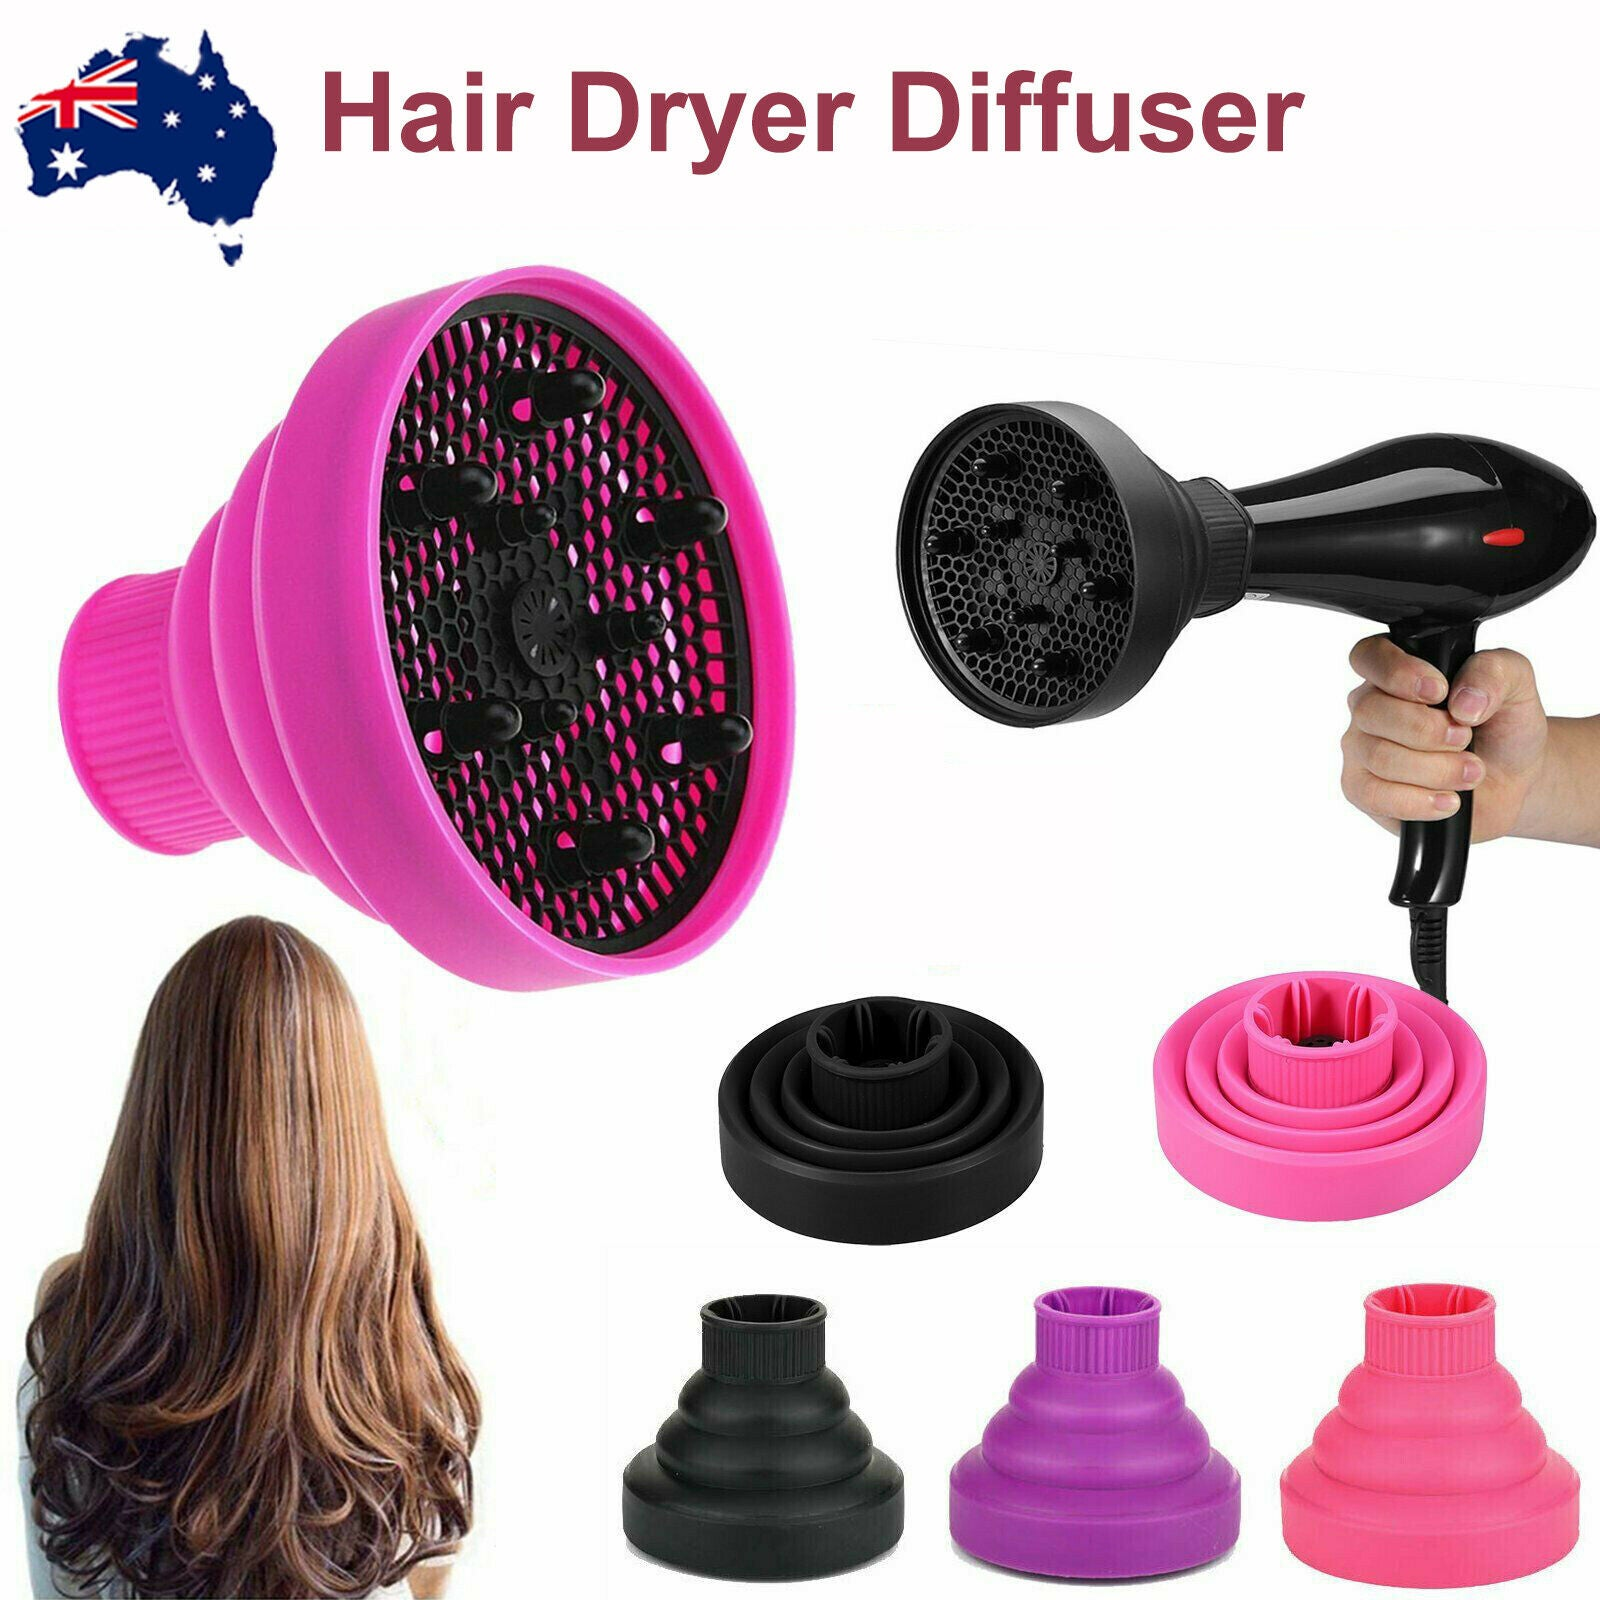 Ozoffer Silicone NEW Hair Dryer Universal Travel Professional Salon Foldable Diffuser